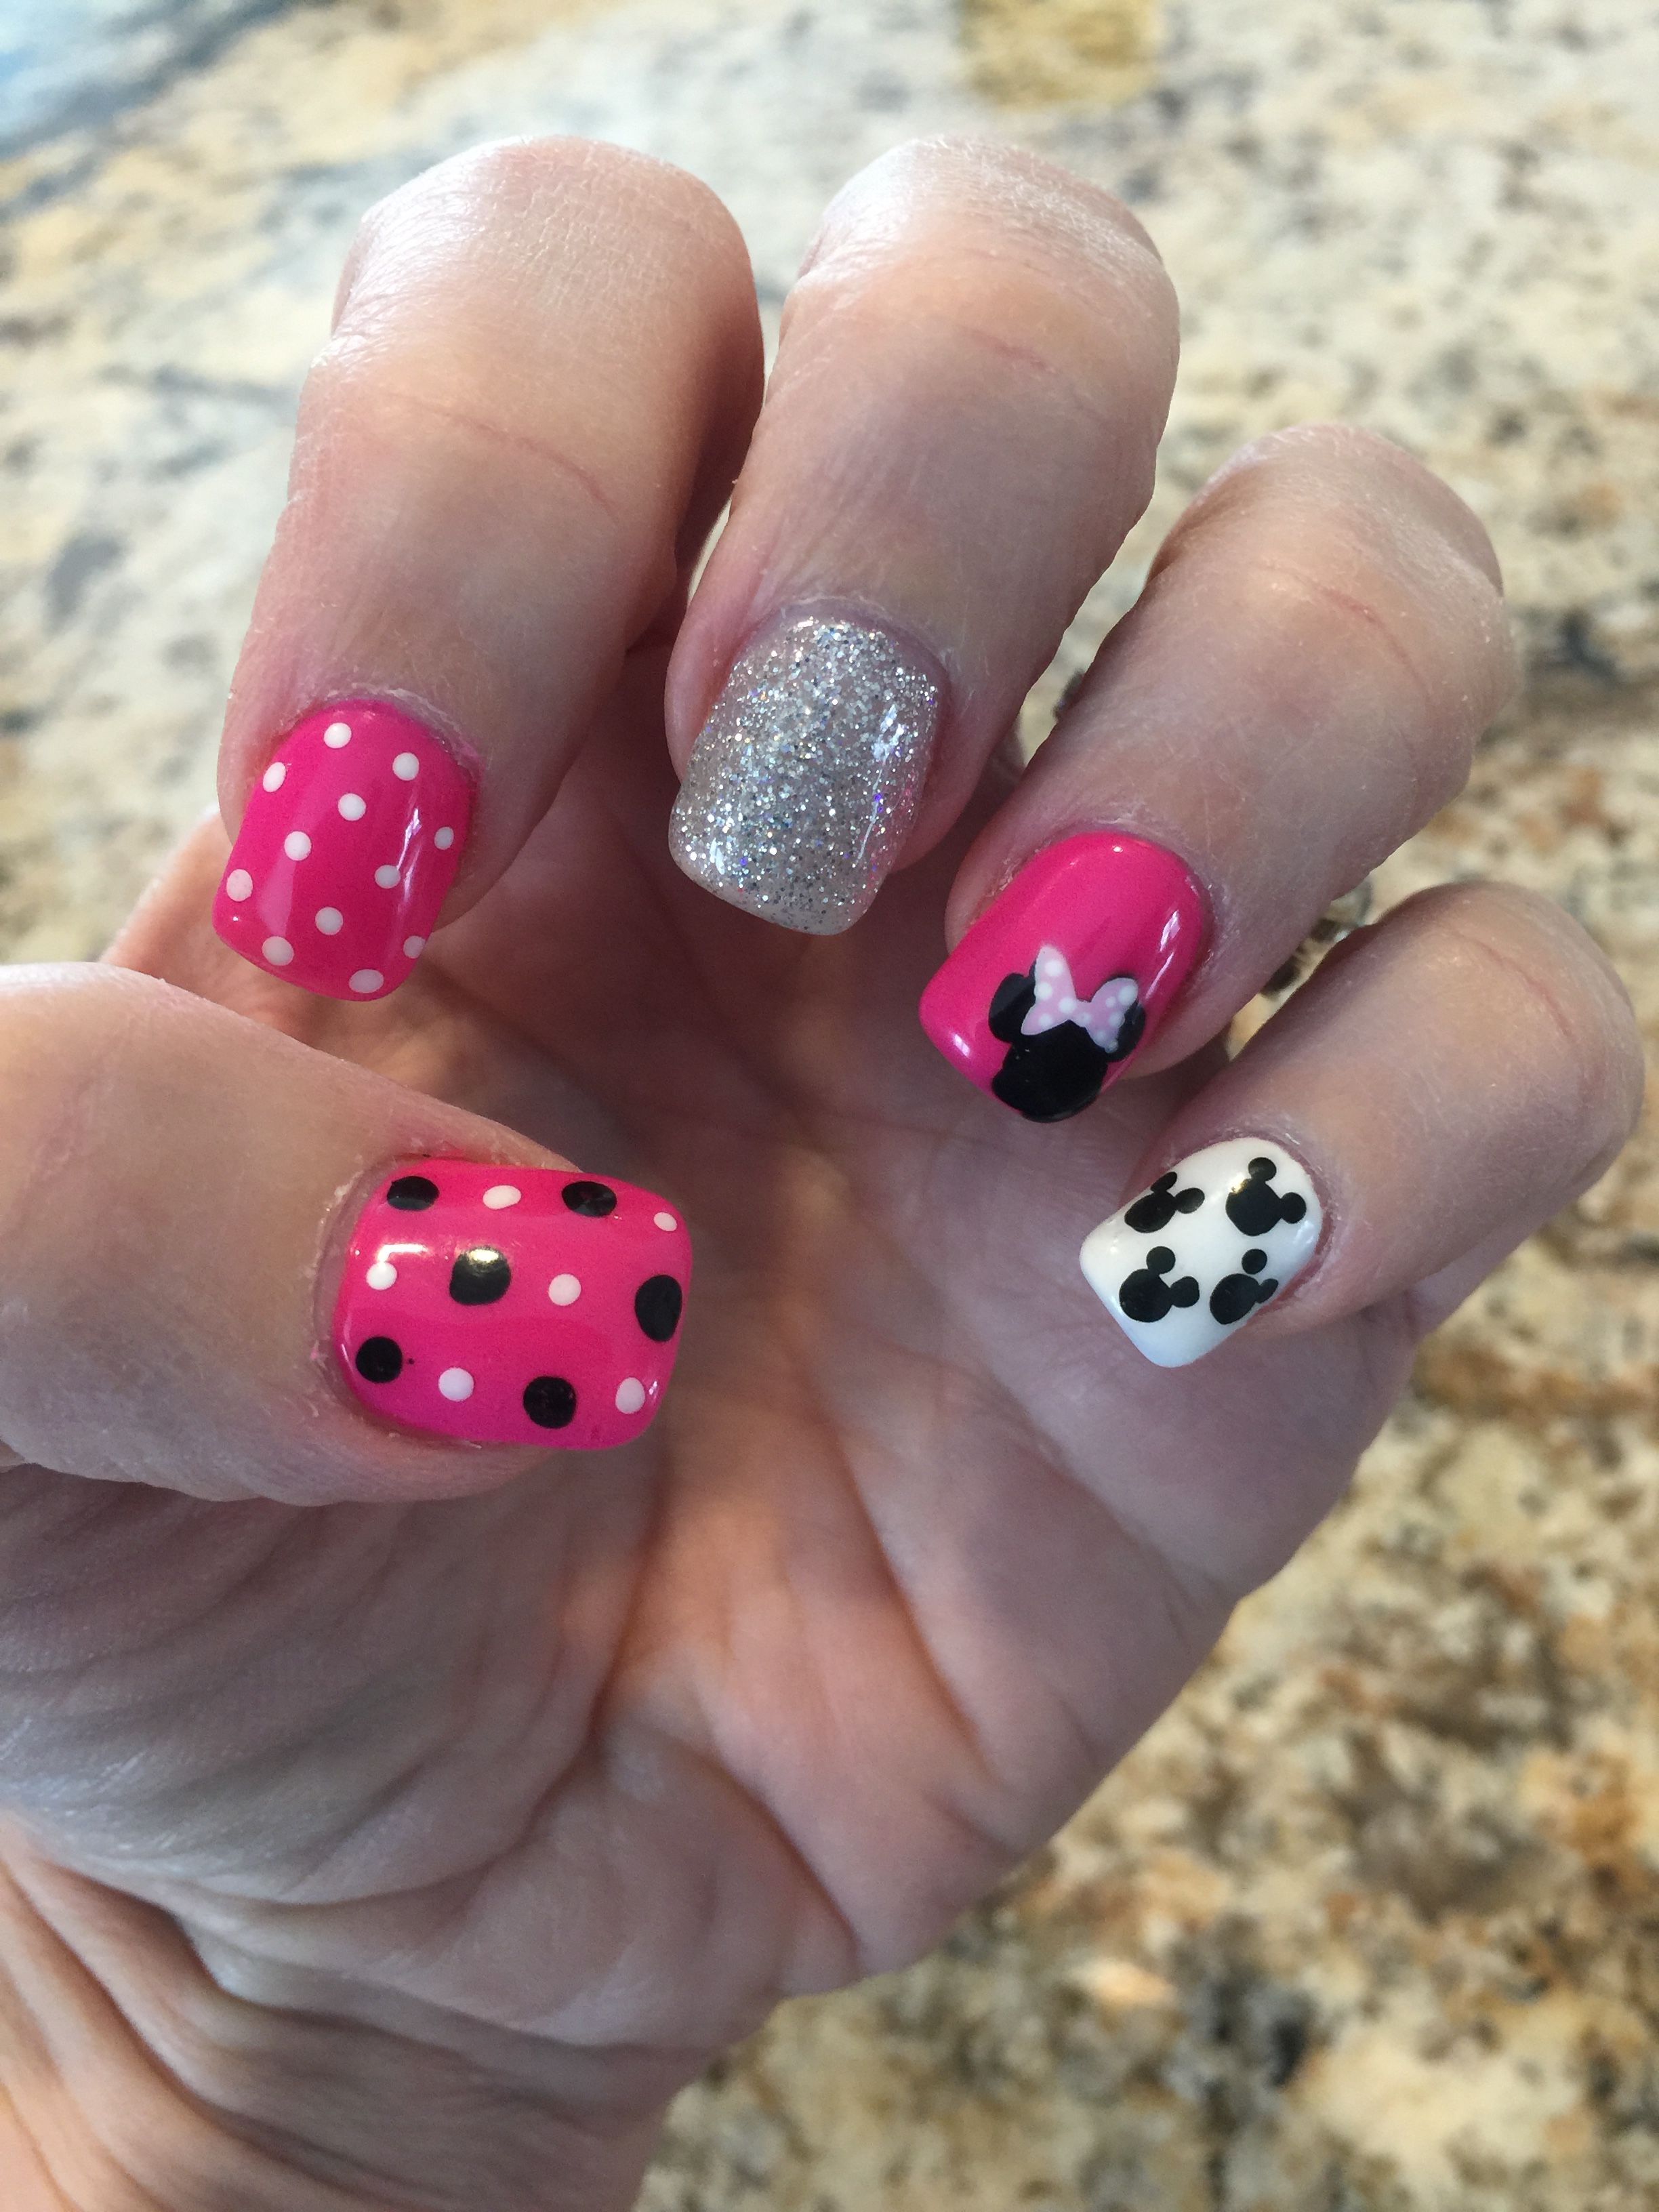 My March Disney nail design | Nails | Pinterest | Disney nail ...